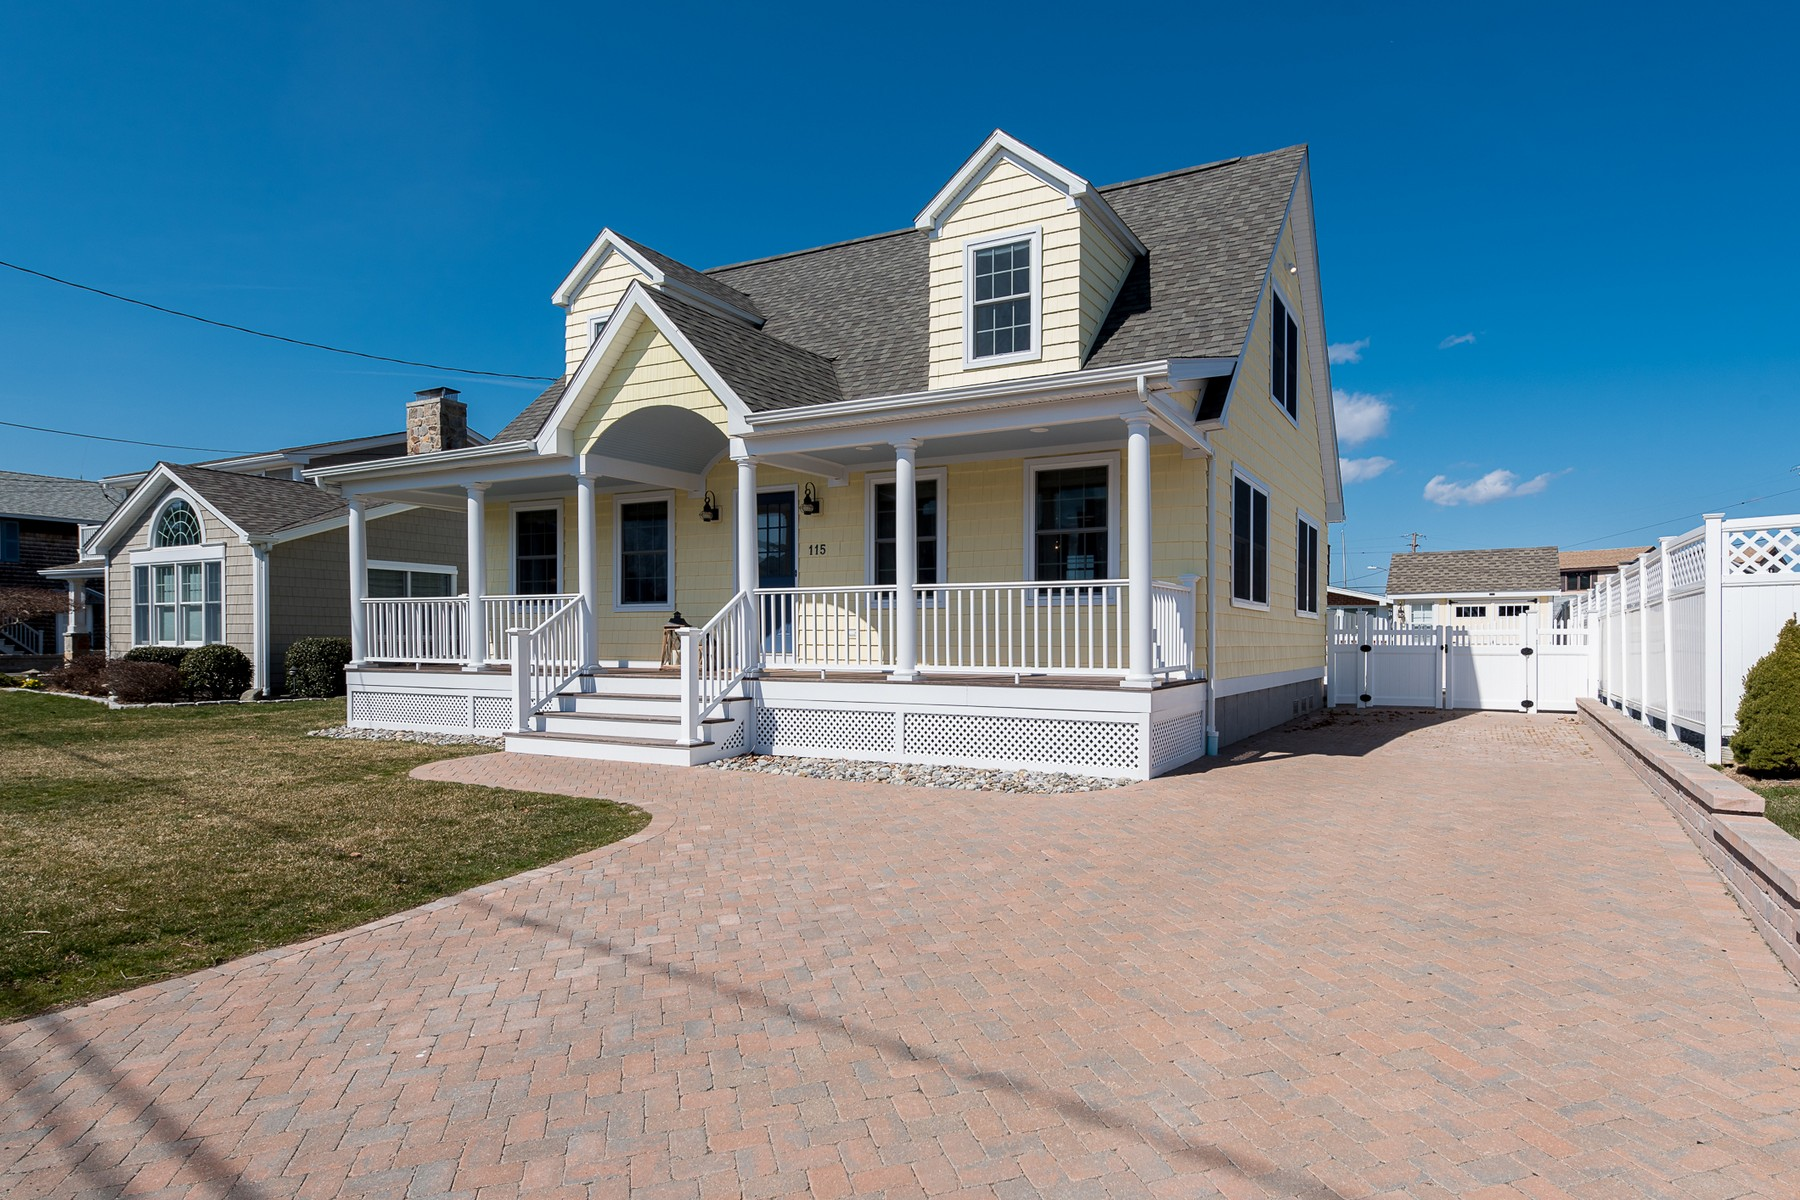 Maison unifamiliale pour l Vente à Turn-key Custom Cape Just Steps to Private Beach 115 Captains Drive Westbrook, Connecticut, 06498 États-Unis